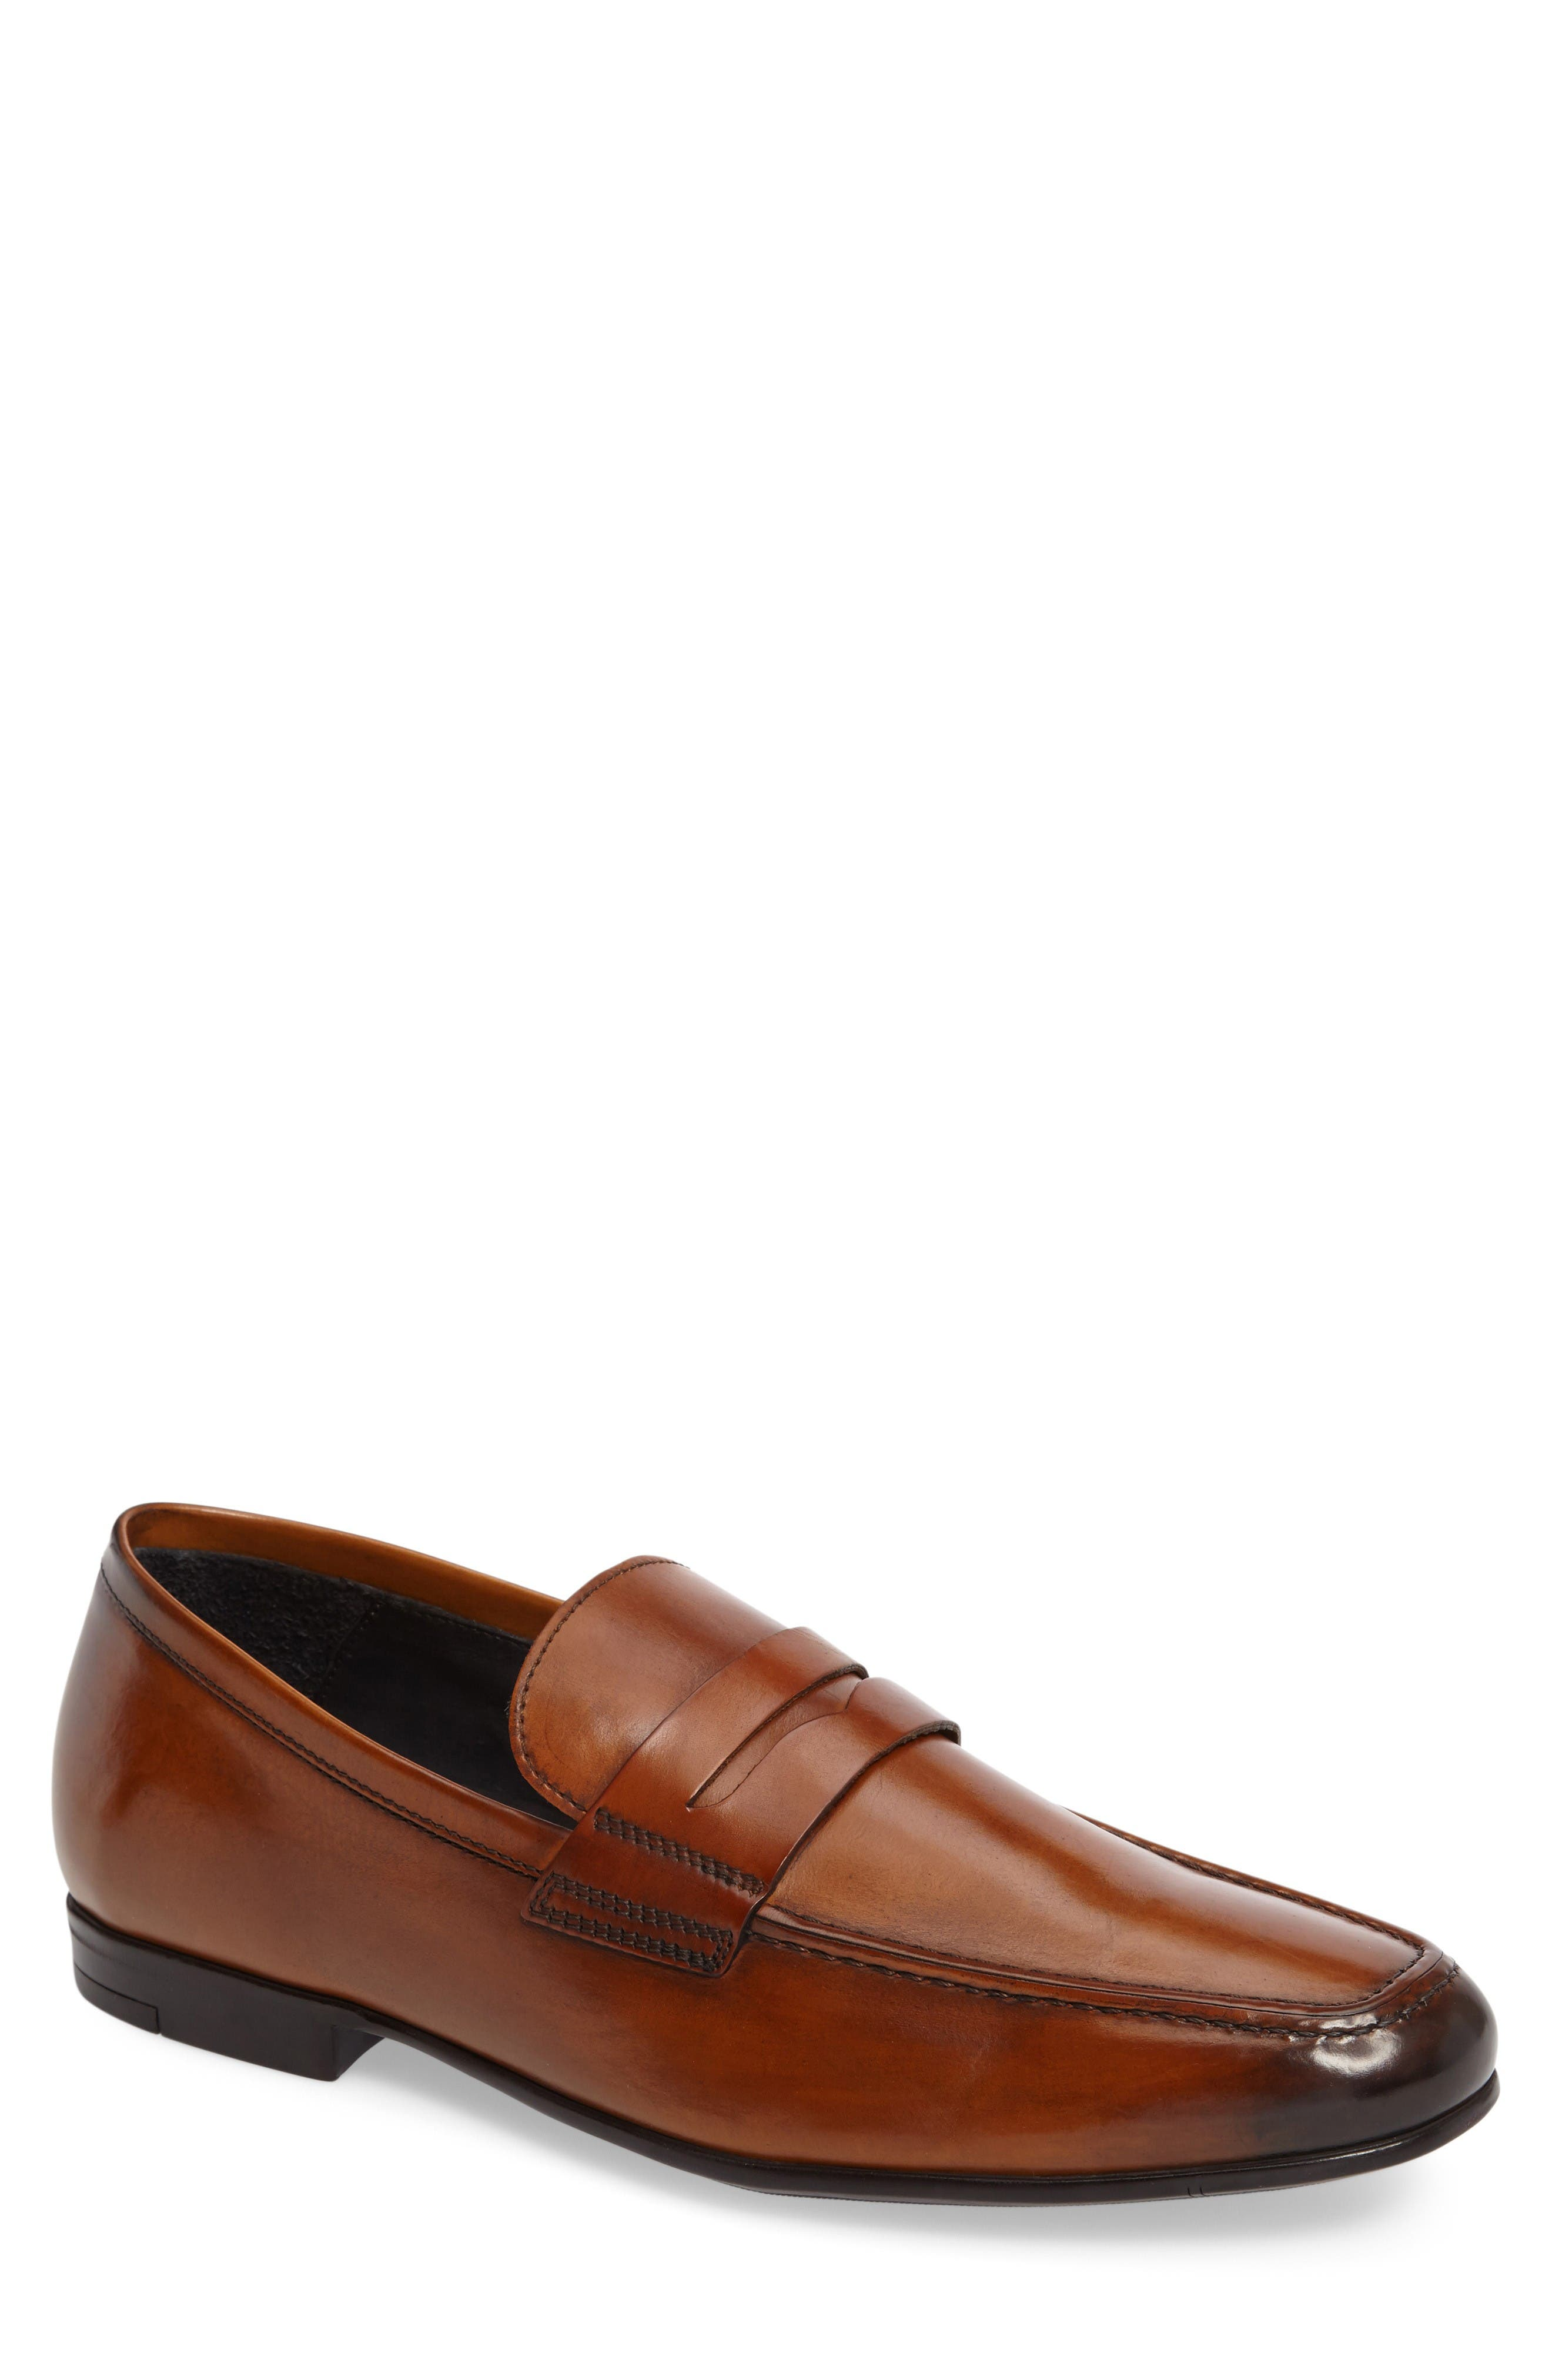 Alternate Image 1 Selected - To Boot New York Alek Penny Loafer (Men)